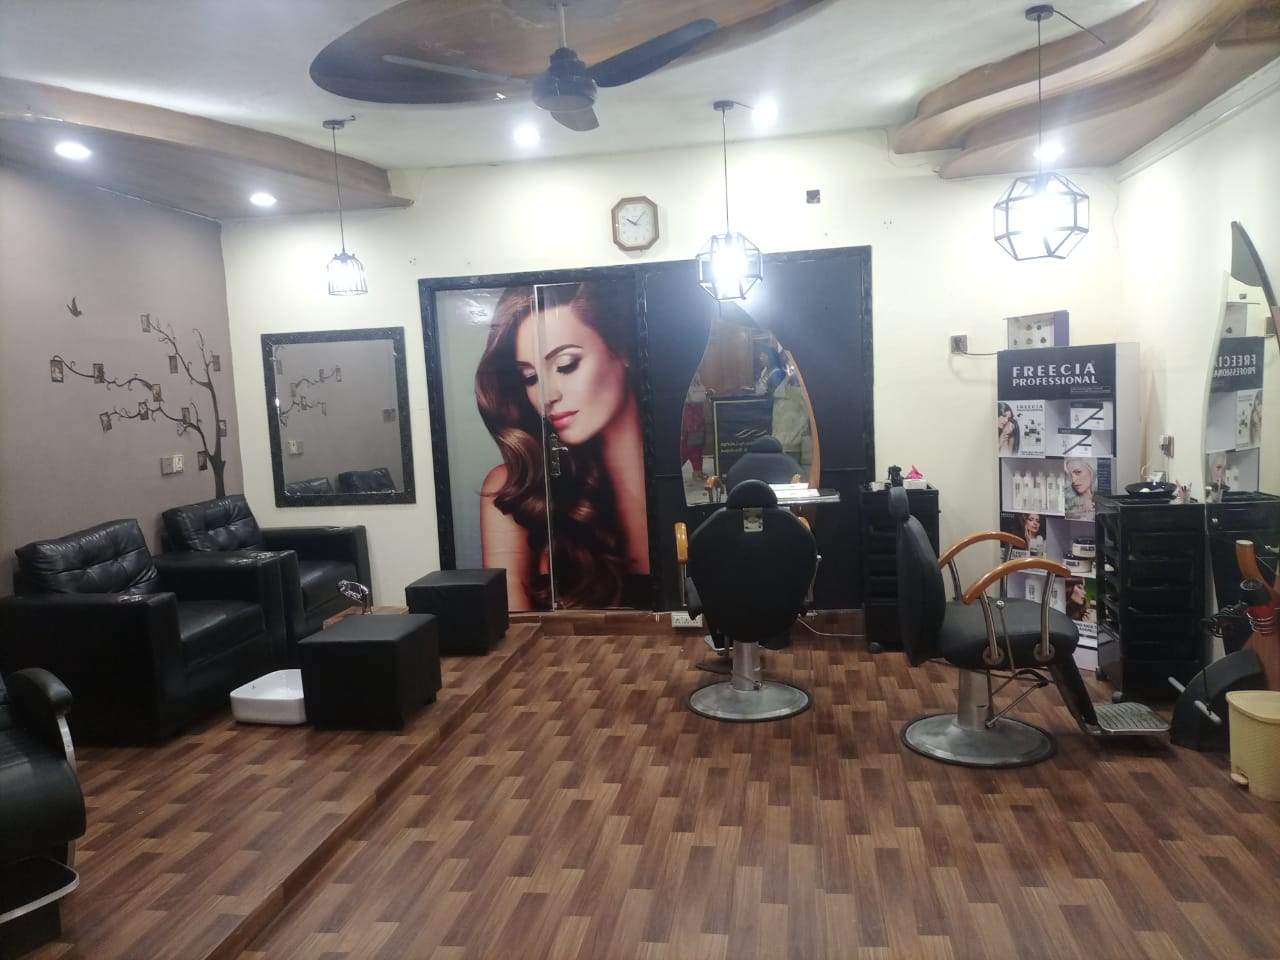 Whitening Facial + Face Polisher + Hot Oil Massage + Whitening Manicure + Whitening Pedicure with Polisher + Threading (Eye brow+Upper lips) by Mirrors Beauty Lounge, Wapda town, Lahore.